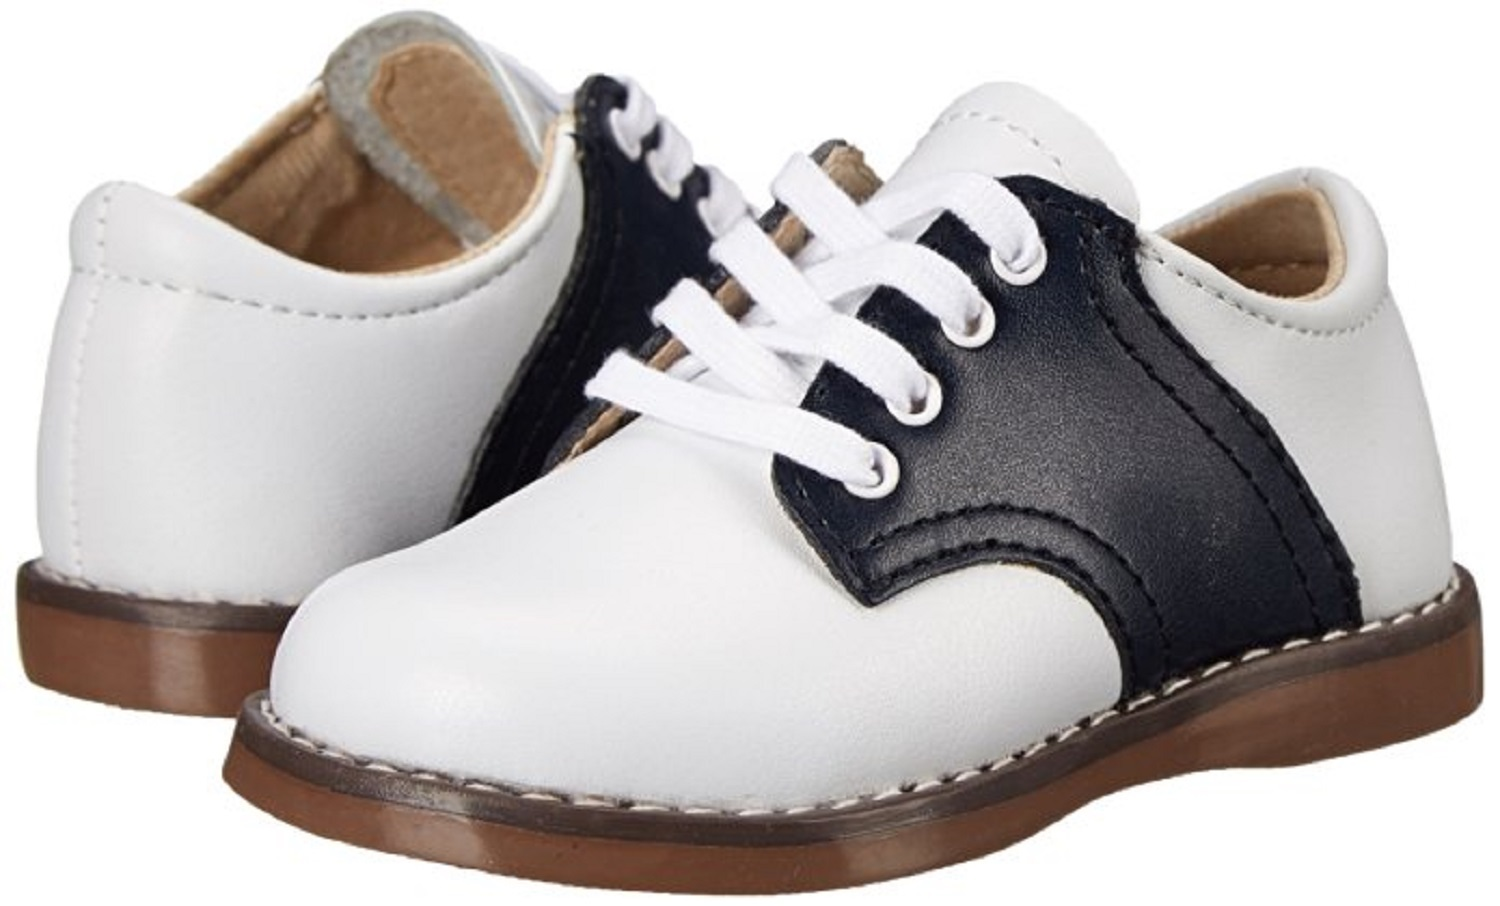 Navy White Saddle Oxford Shoes